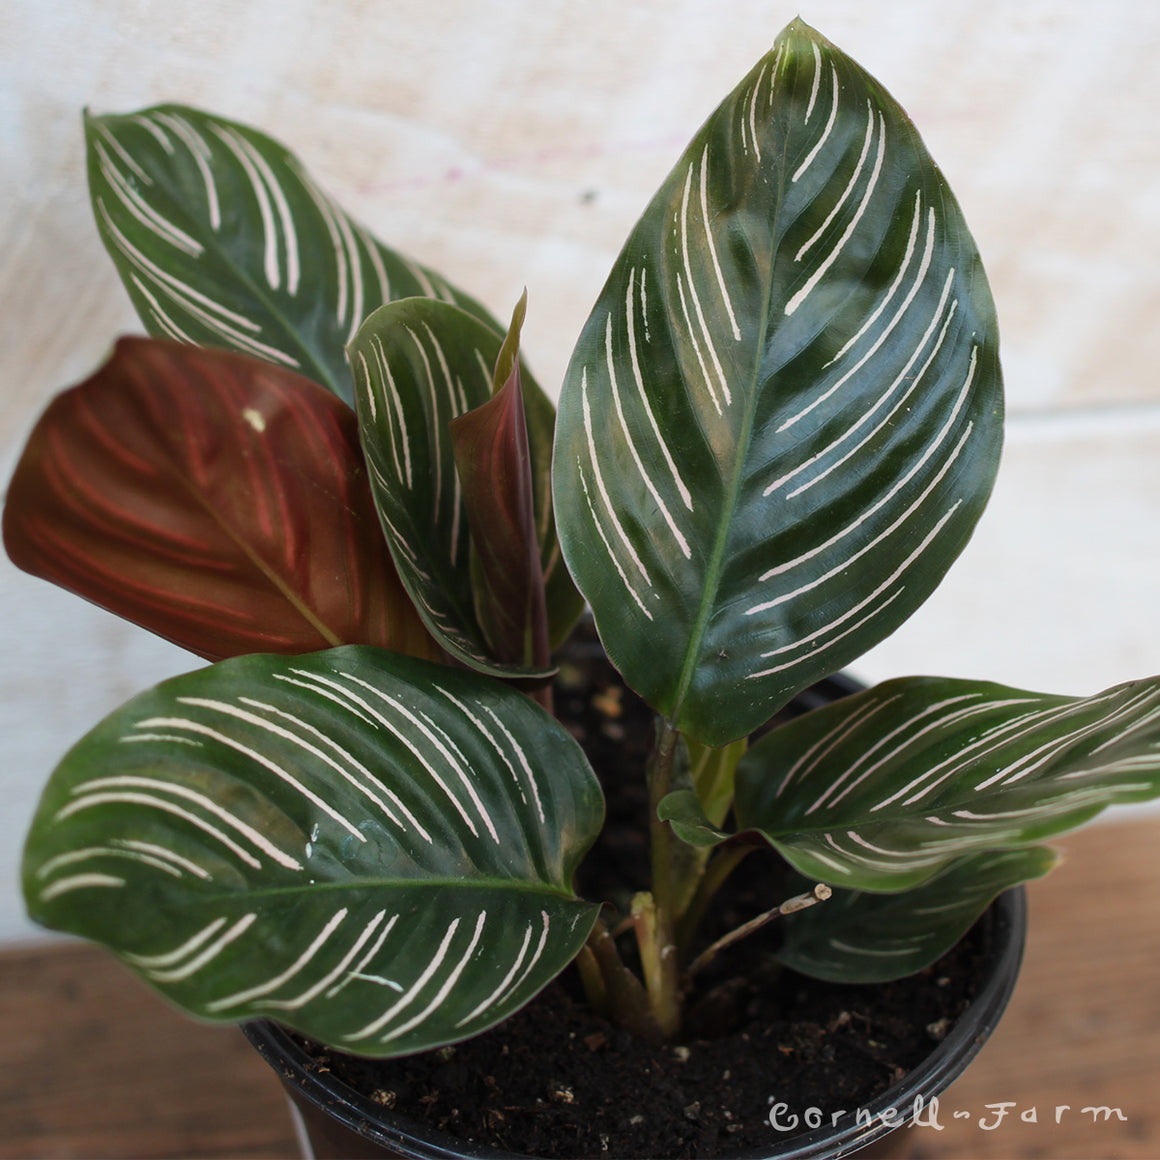 Calathea Ornata 4in